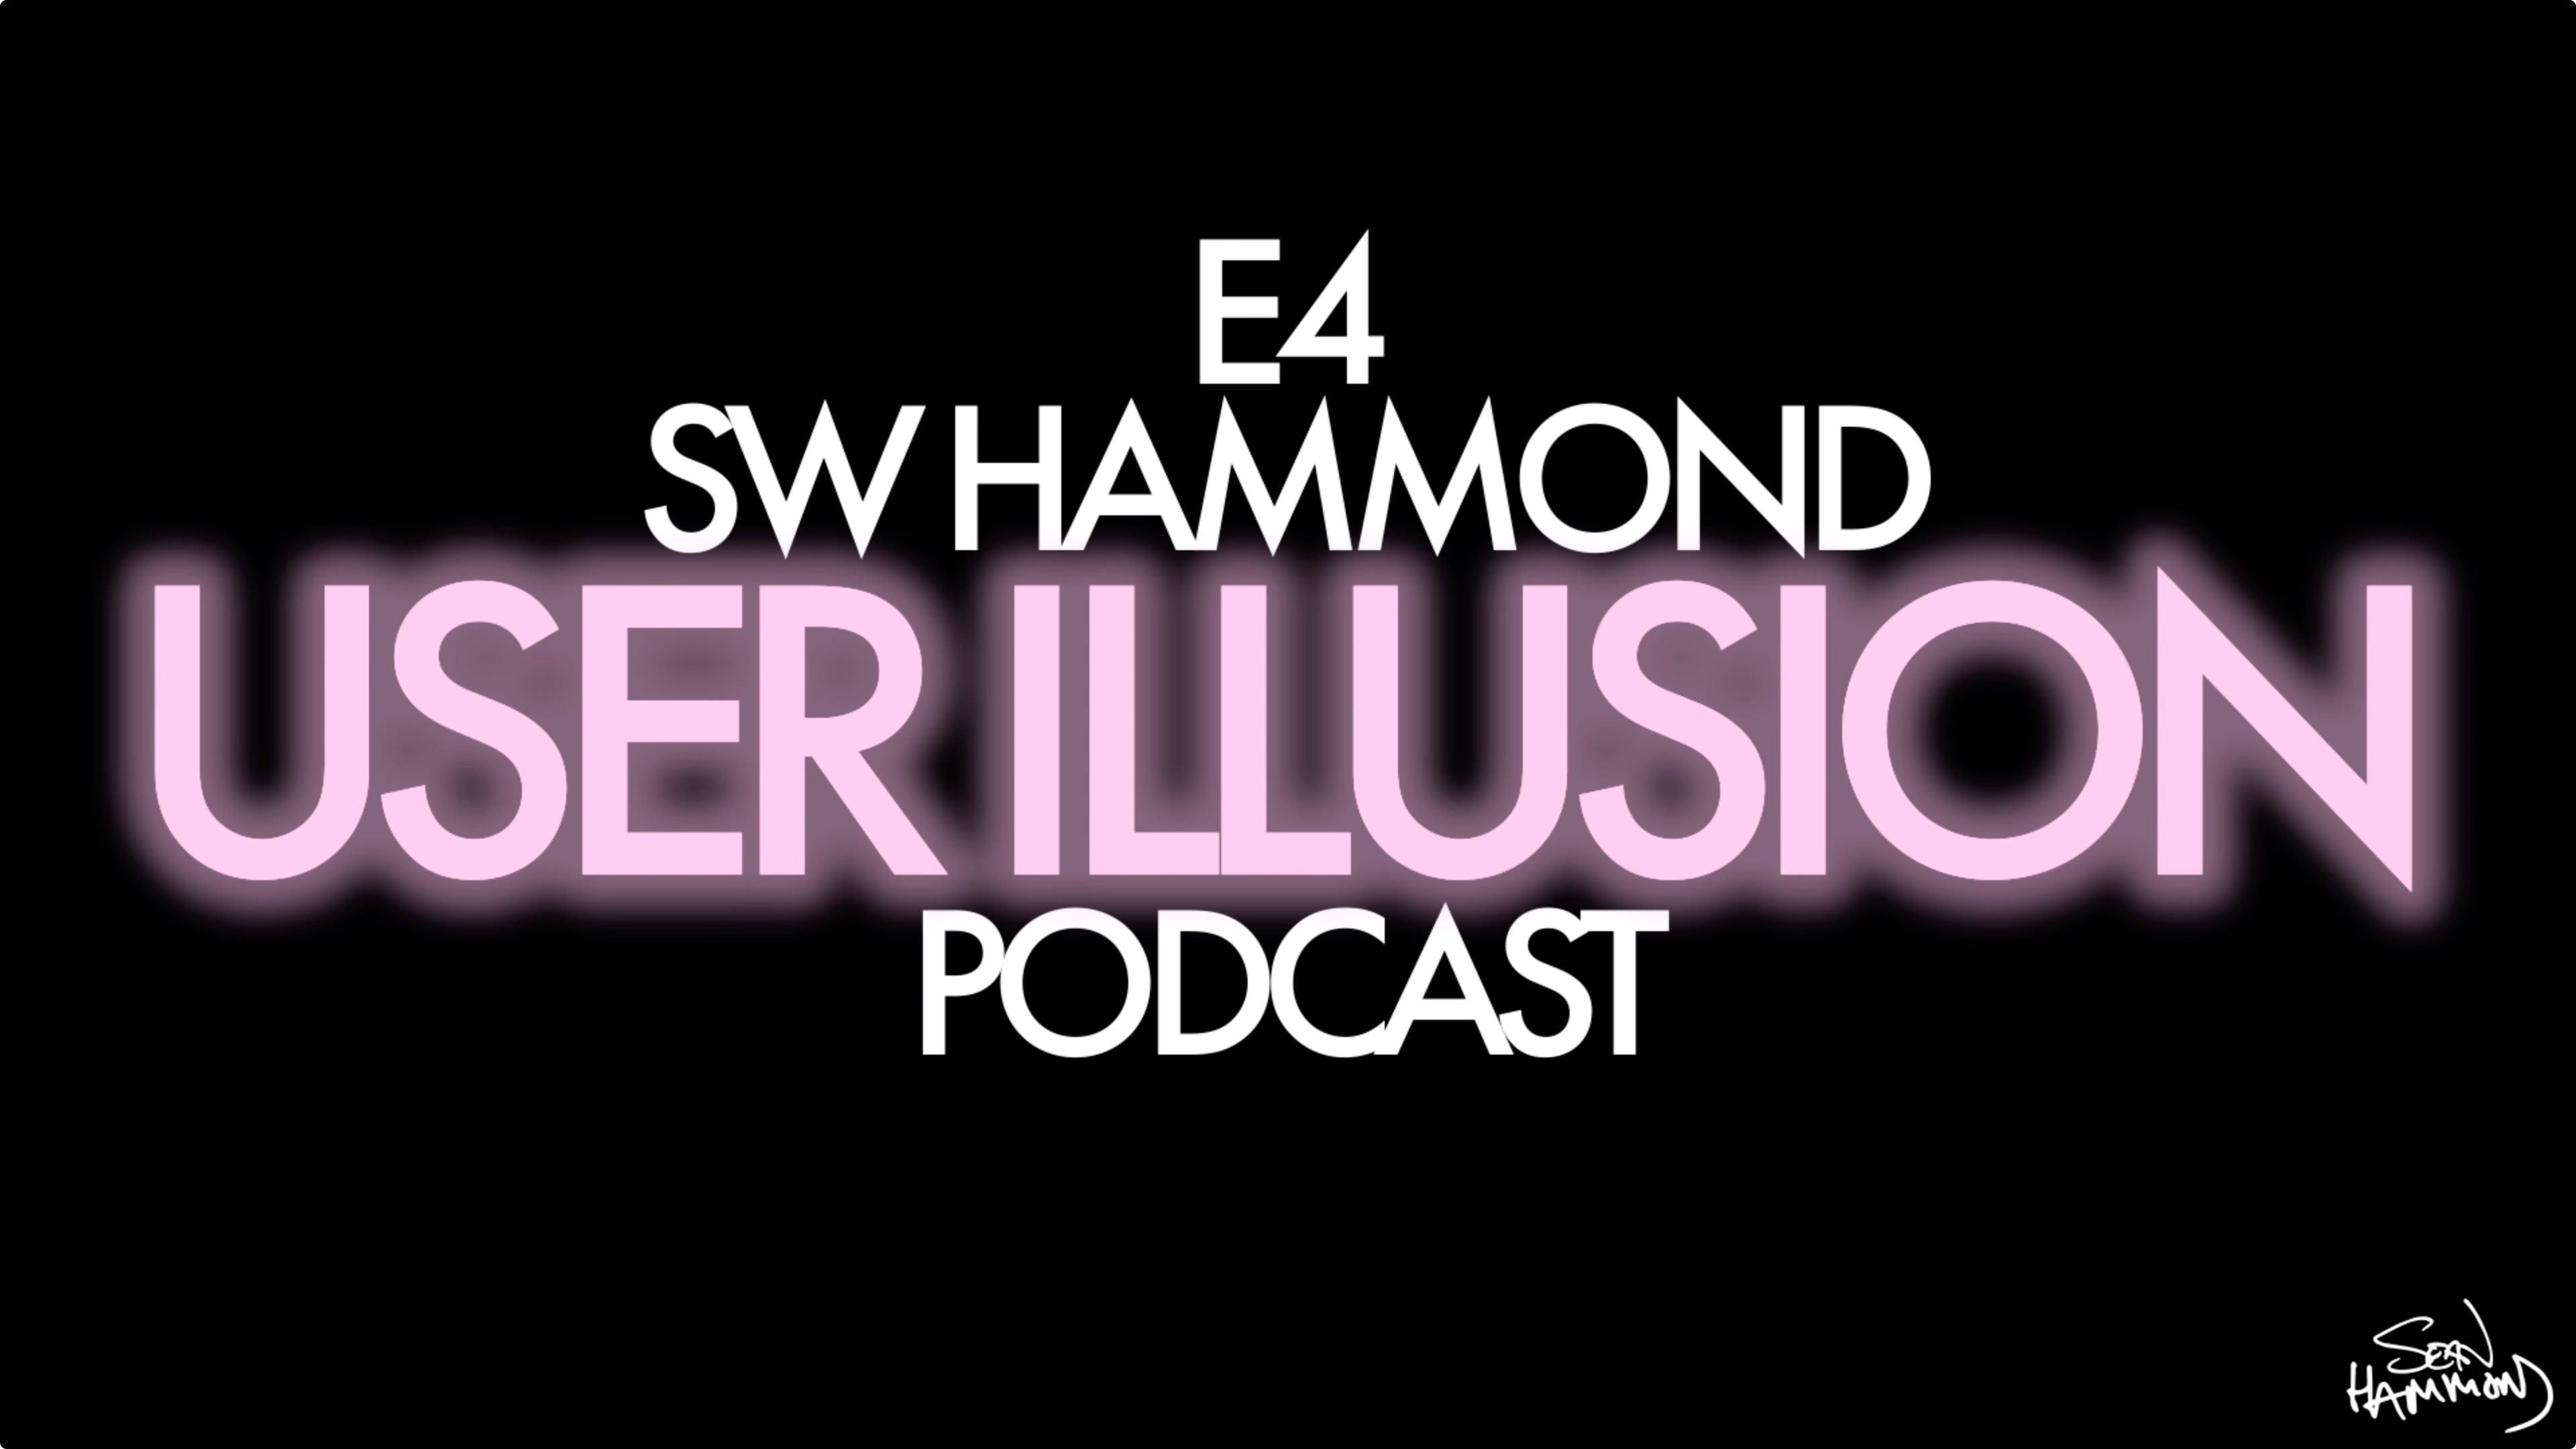 Episode 4 of User Illusion Podcast with SW Hammond